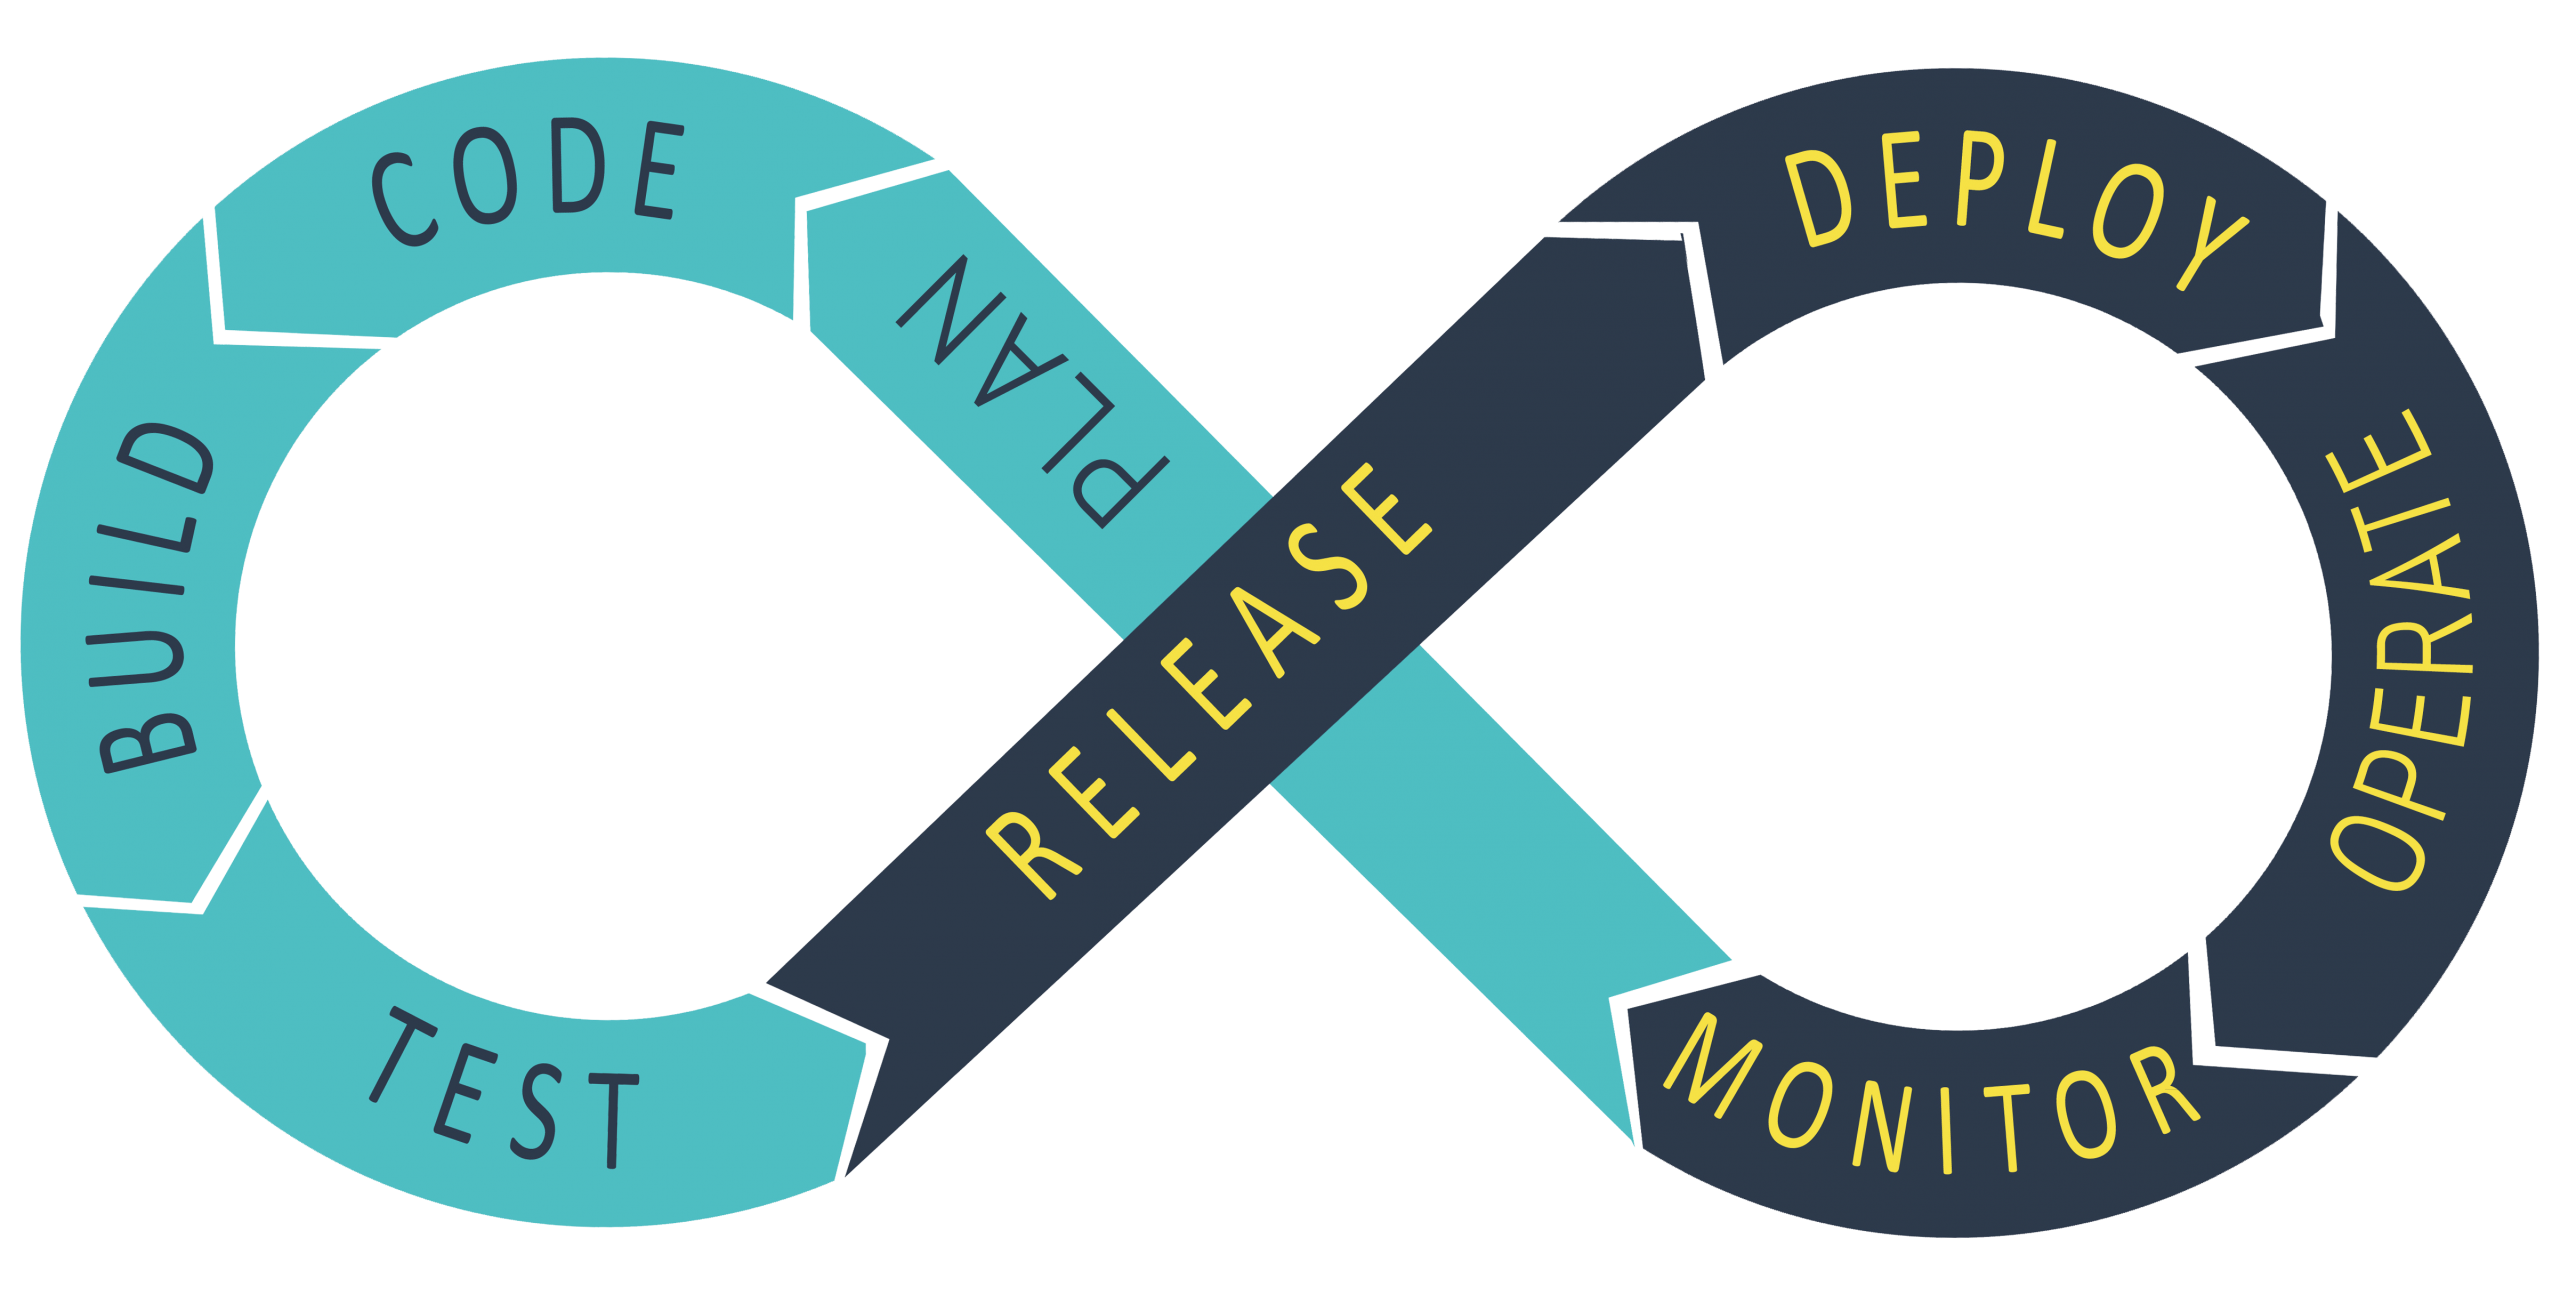 DevOps is often represented by the continuous loop to show continuous delivery